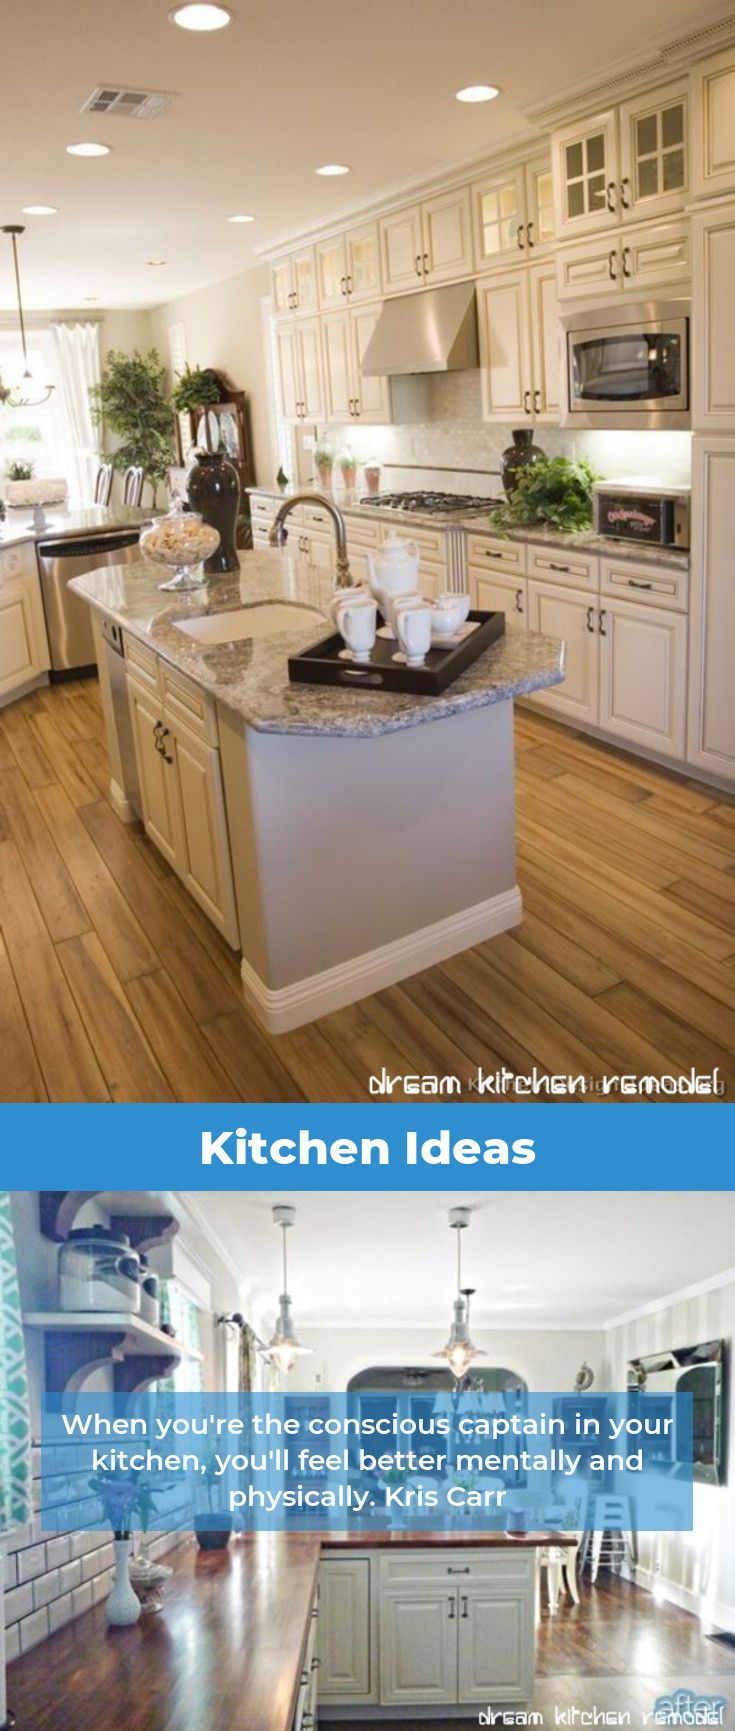 remodel kitchen tools - 3.11.taichiwarriors.nl •